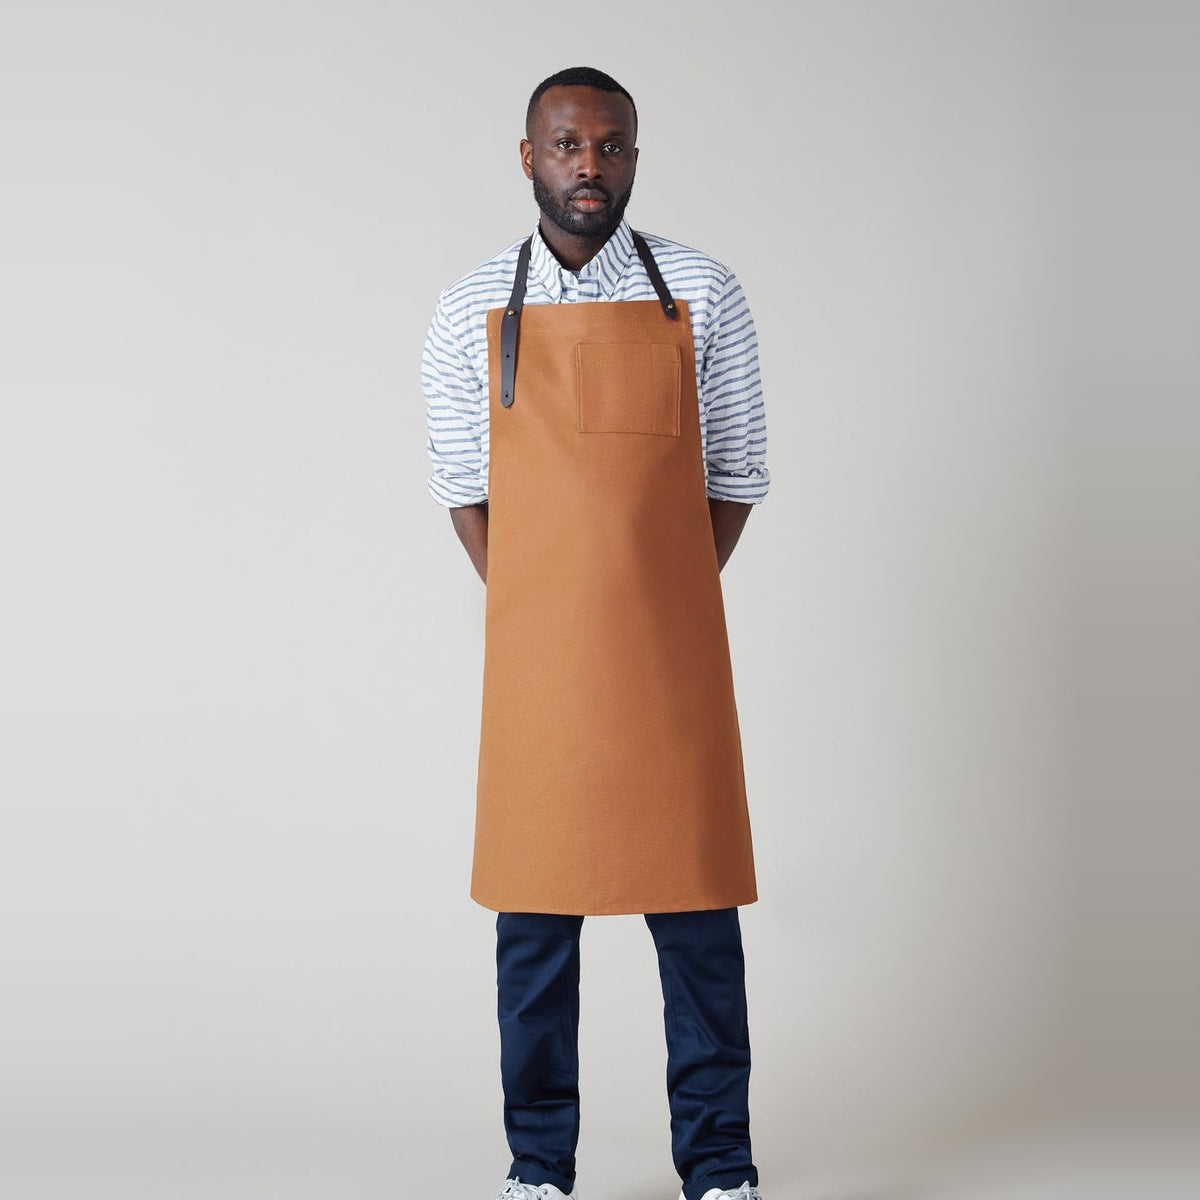 Model Wearing a Handmade Unisex Camel Canvas & Leather Apron - Sold by Chic & Basta